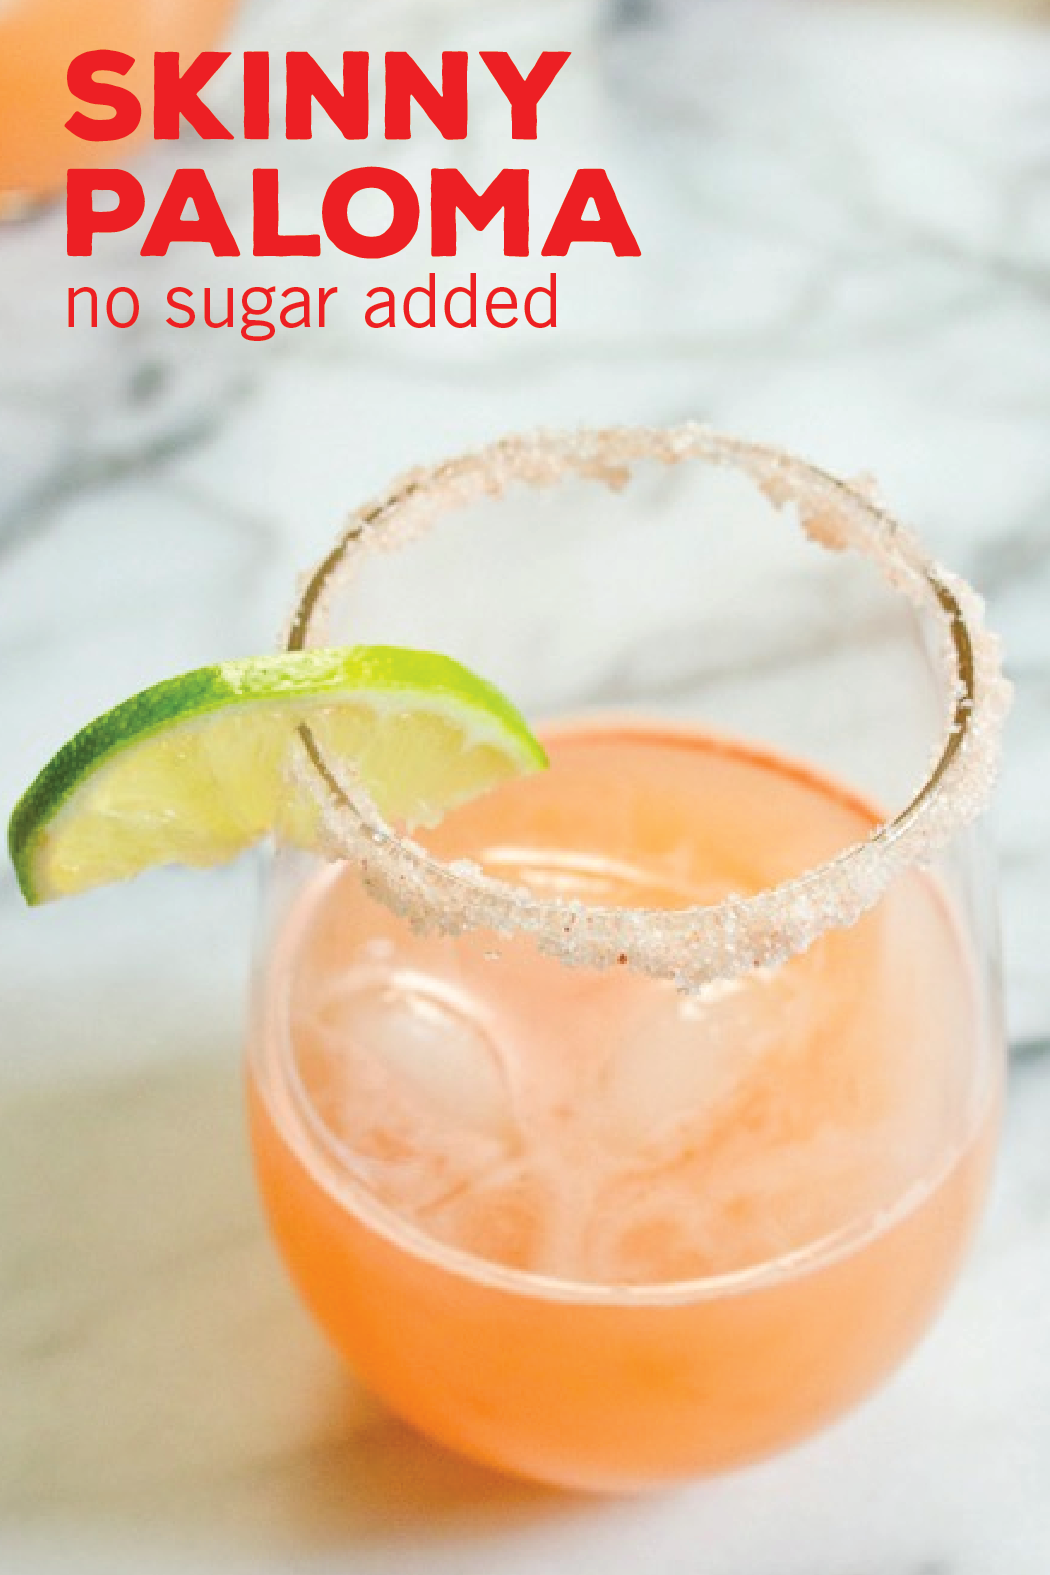 sure that this Skinny Paloma recipe will deepen your love of refreshing, citrus cocktails. With all the flavors of your favorite margarita, see how this healthy mixed drink tastes so delicious without any sugar added!